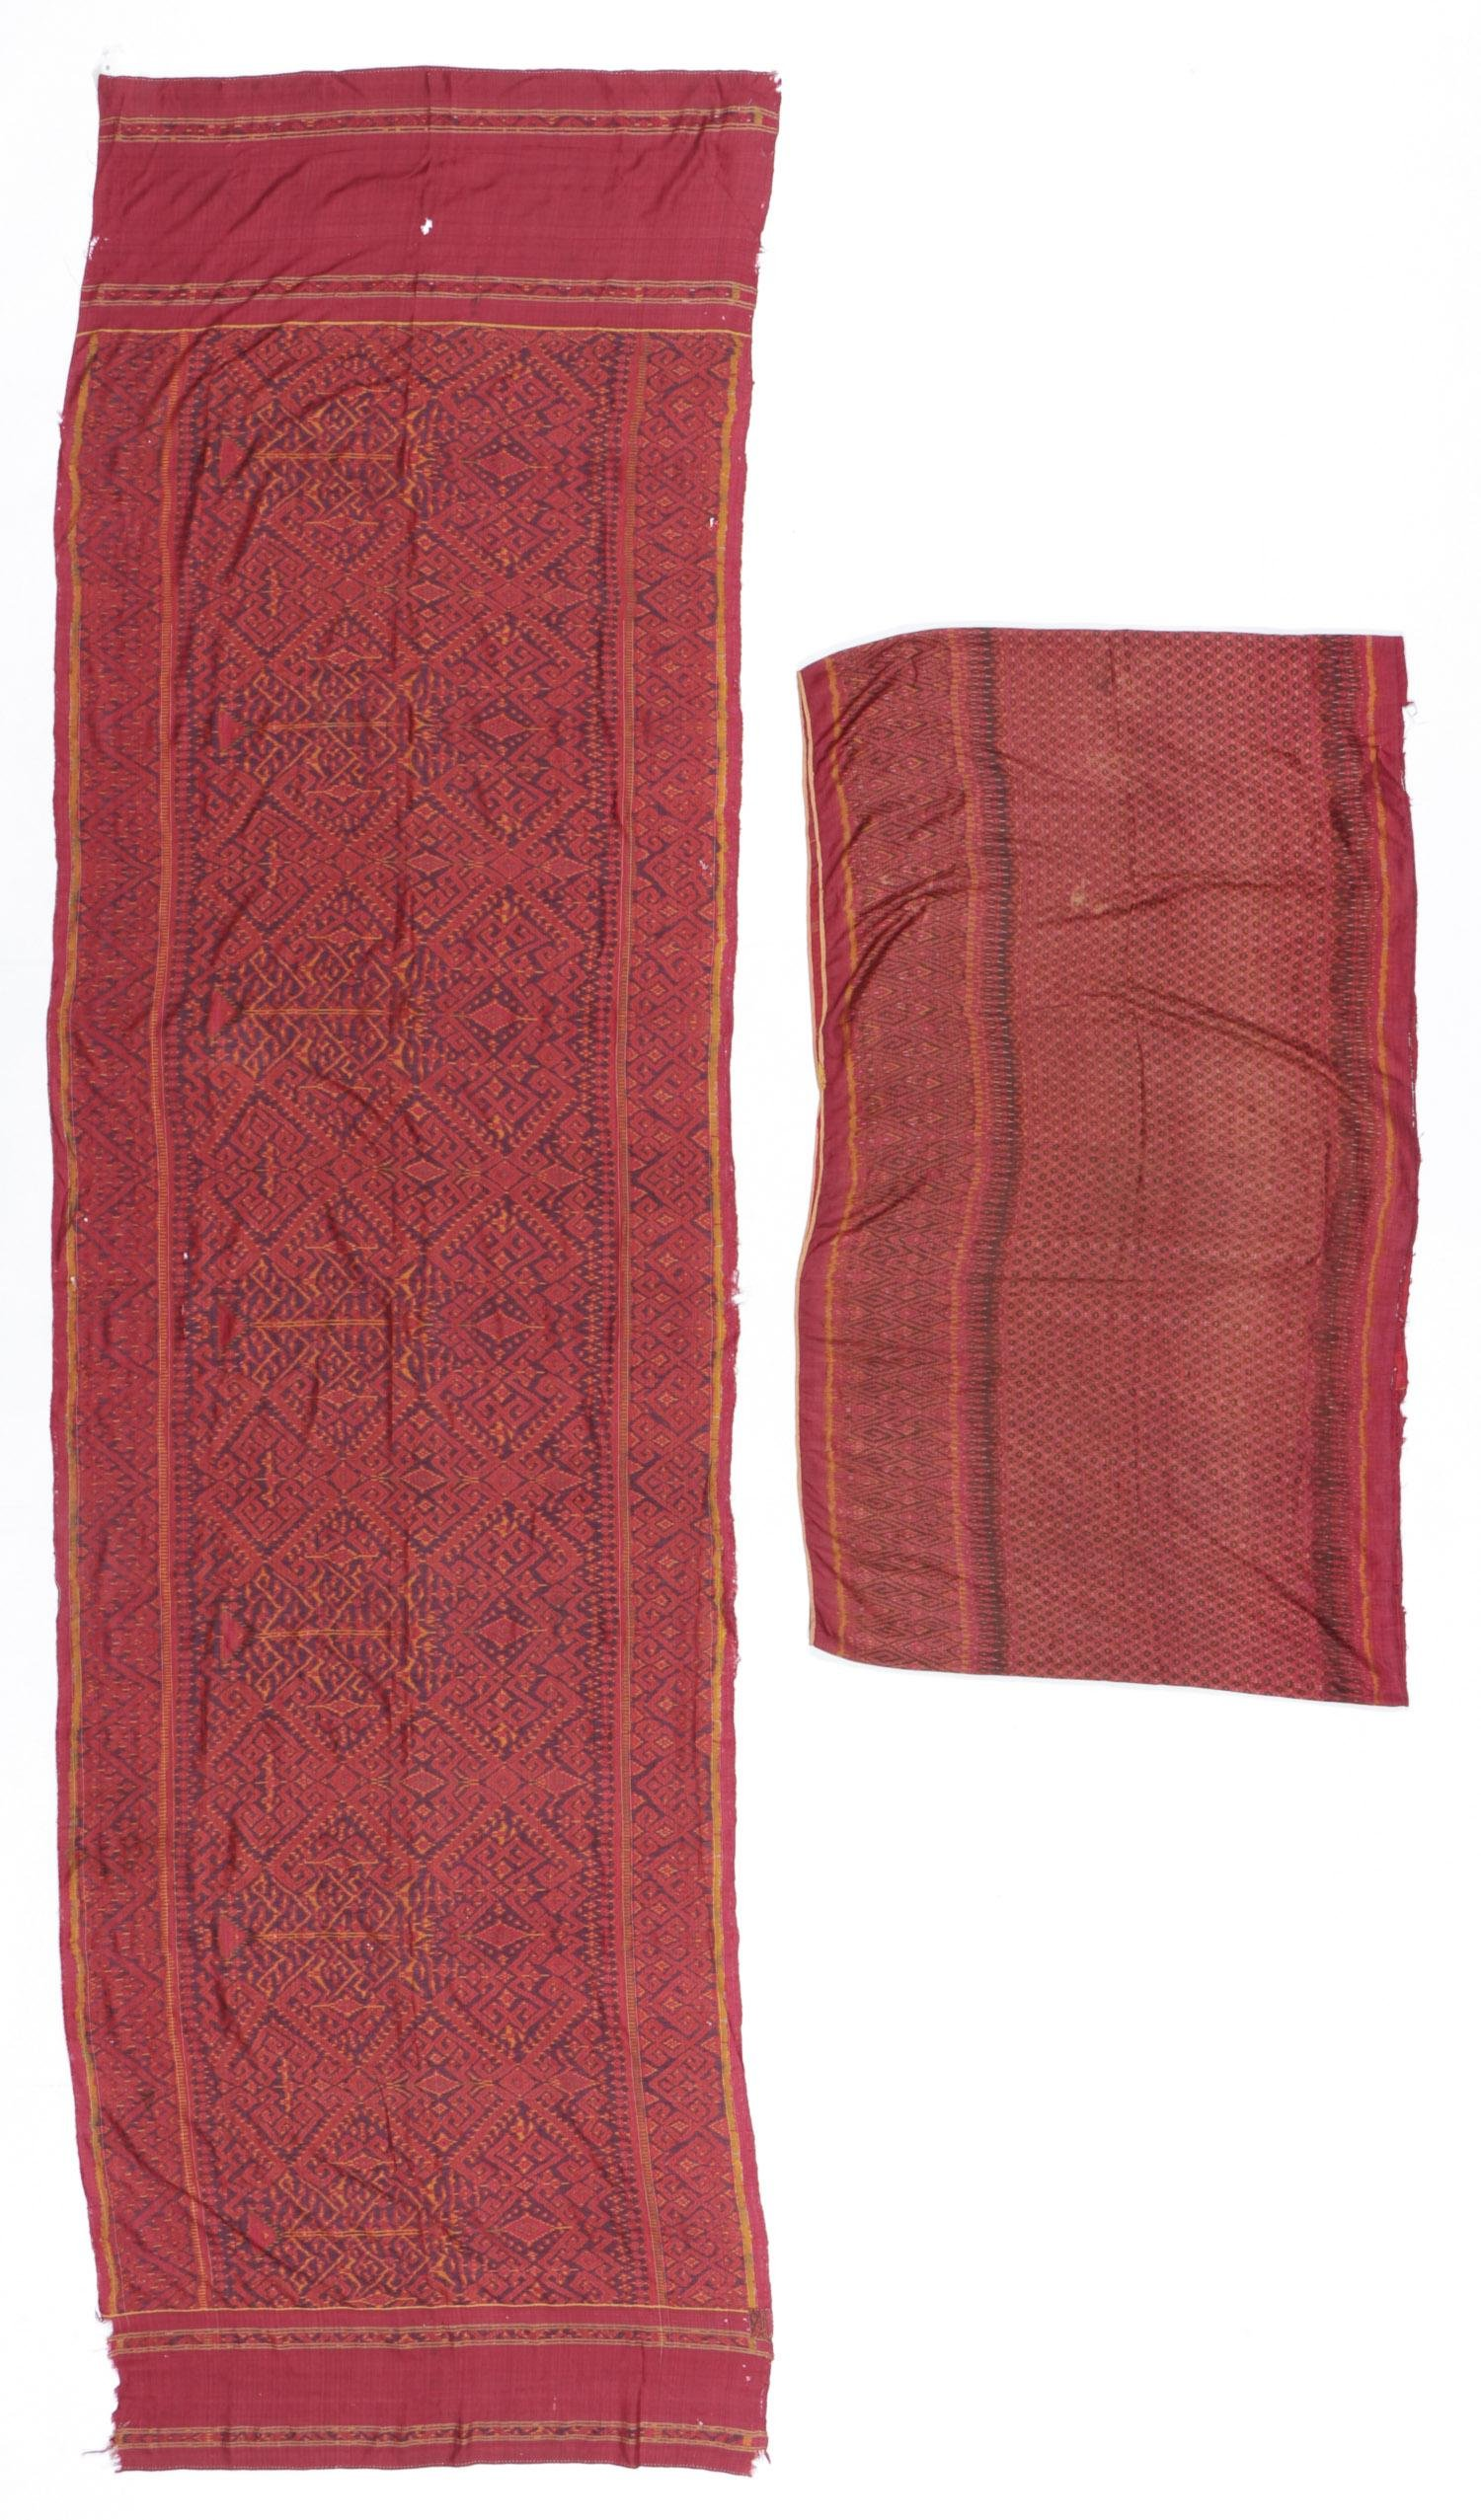 2 Cambodian Silk Ikat Textiles, Early 20th C.